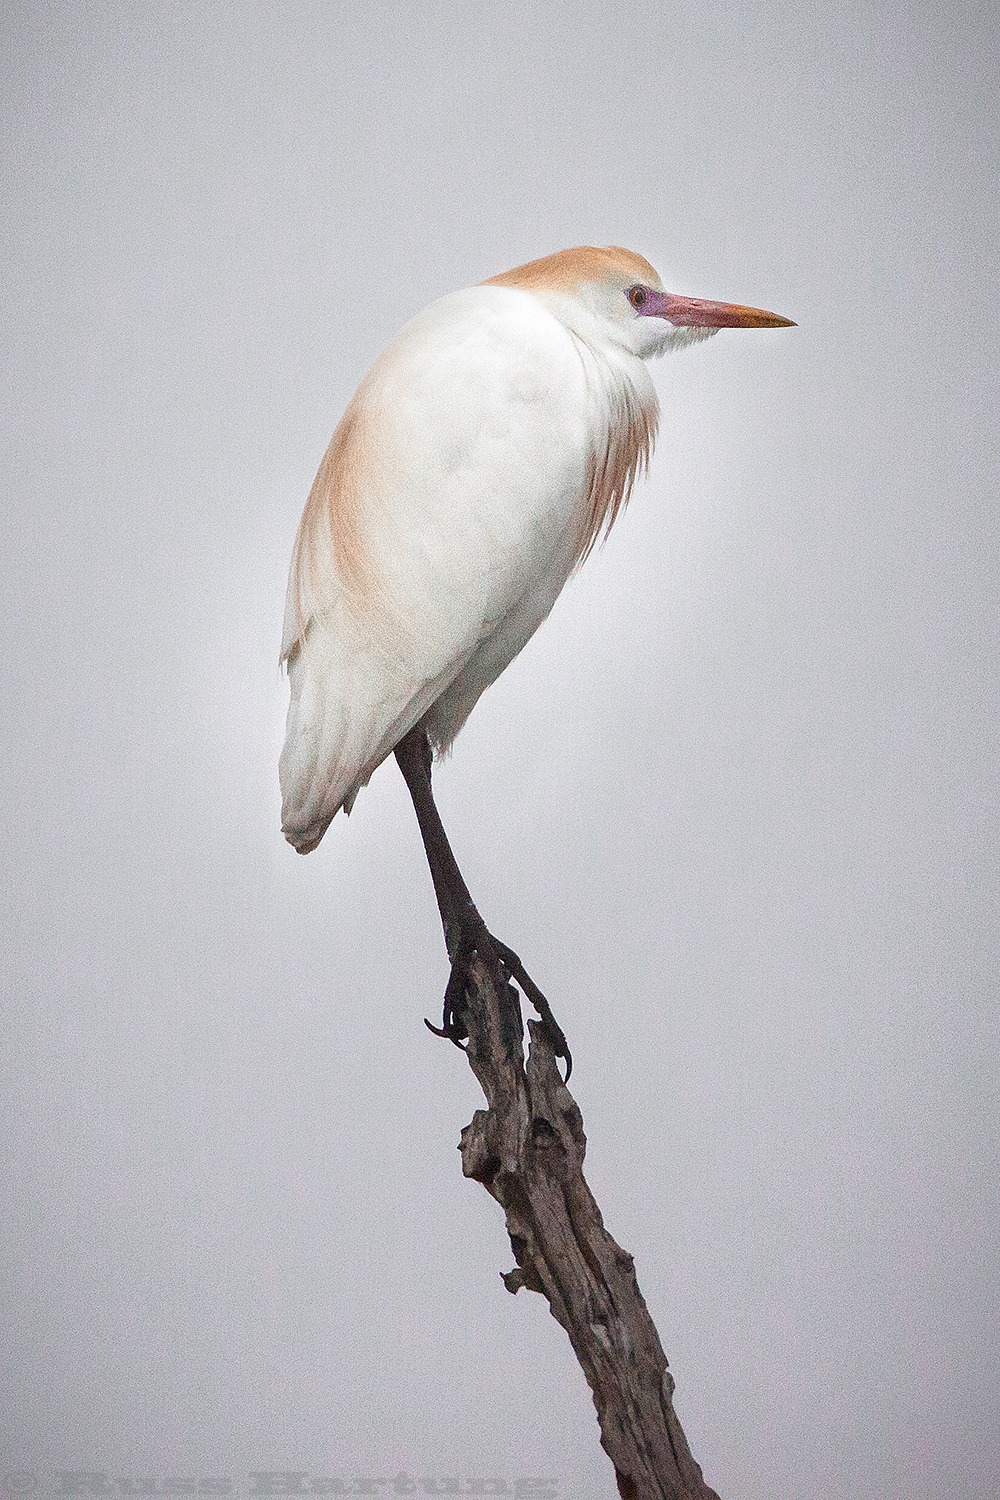 Cattle Egret perched on a foggy morning. Orlando Wetlands Park, Florida.